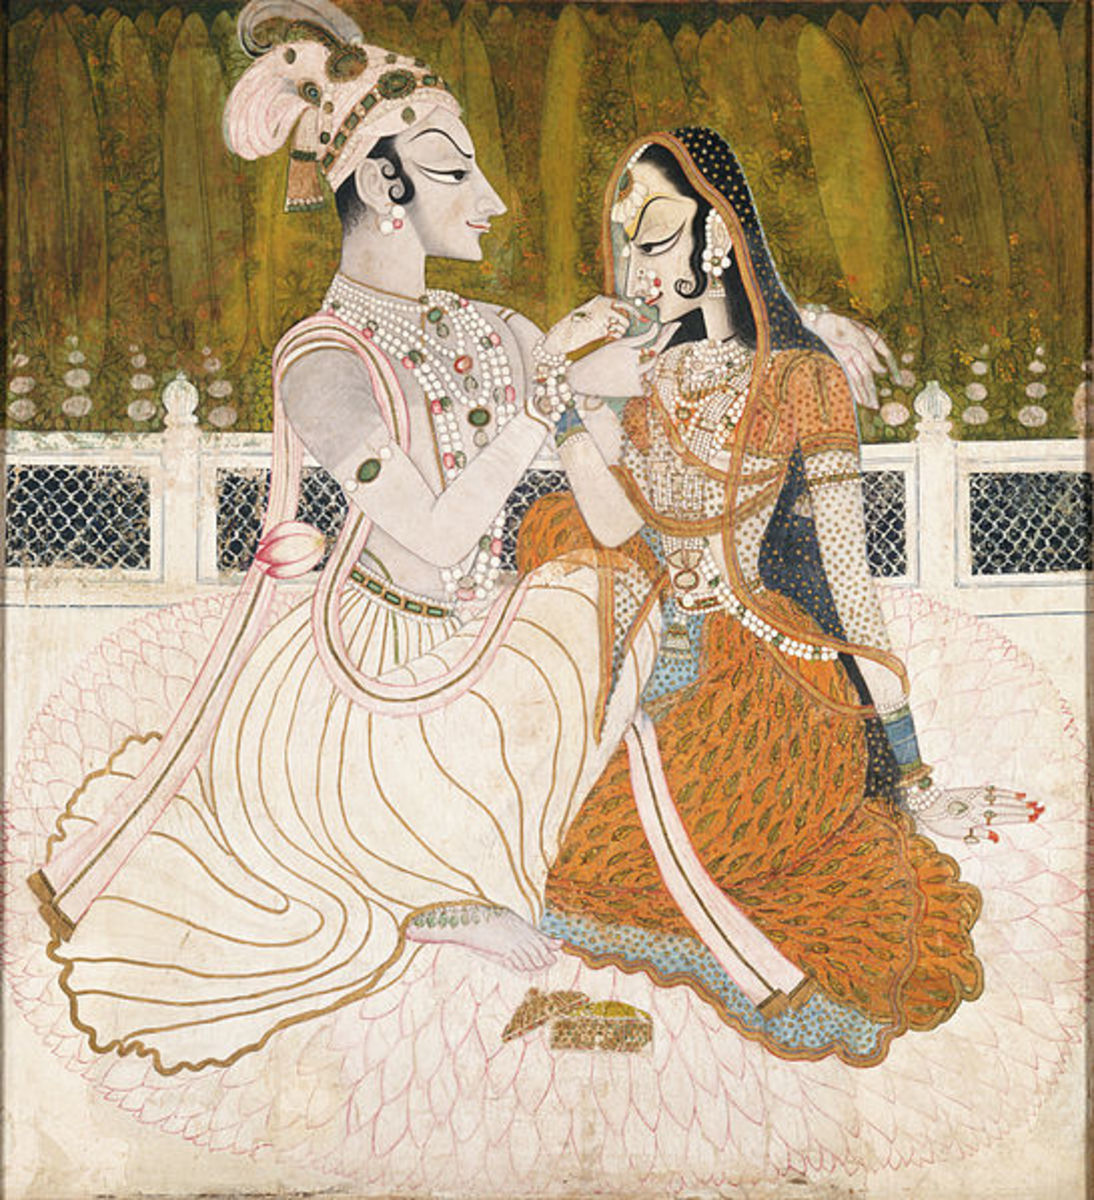 Krishna and Radha, the eternal lovers